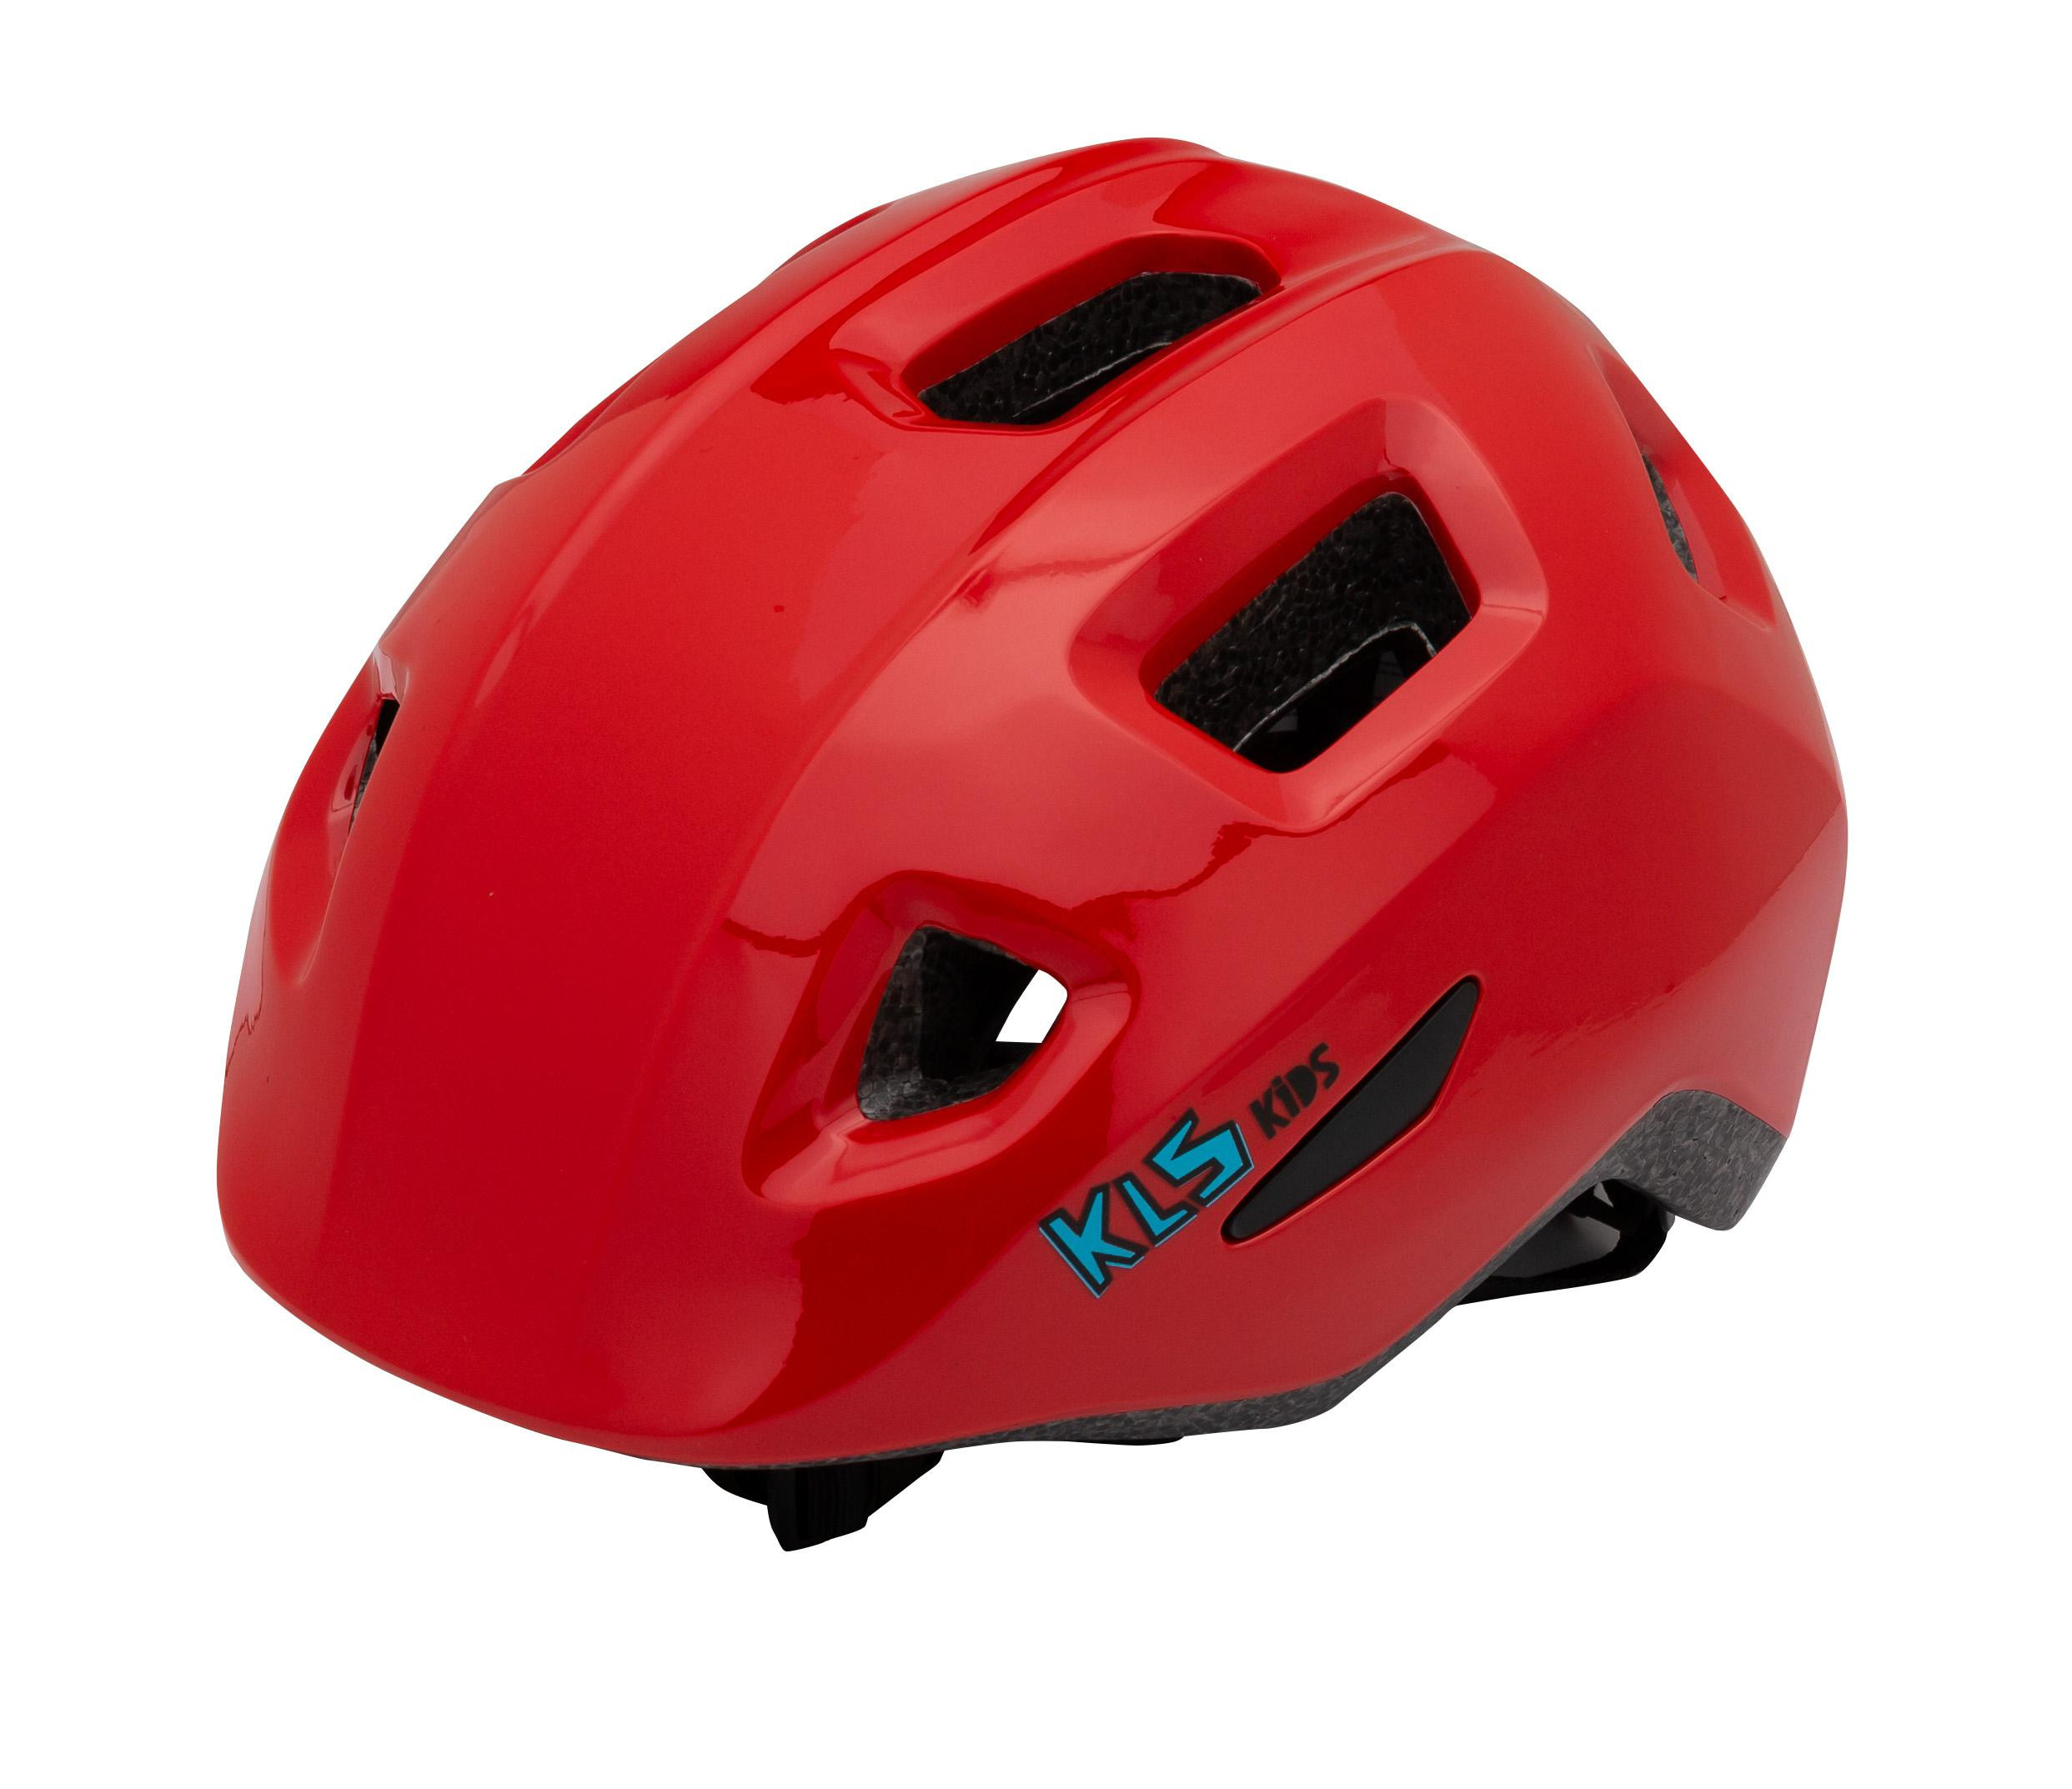 Kask ACEY red XS